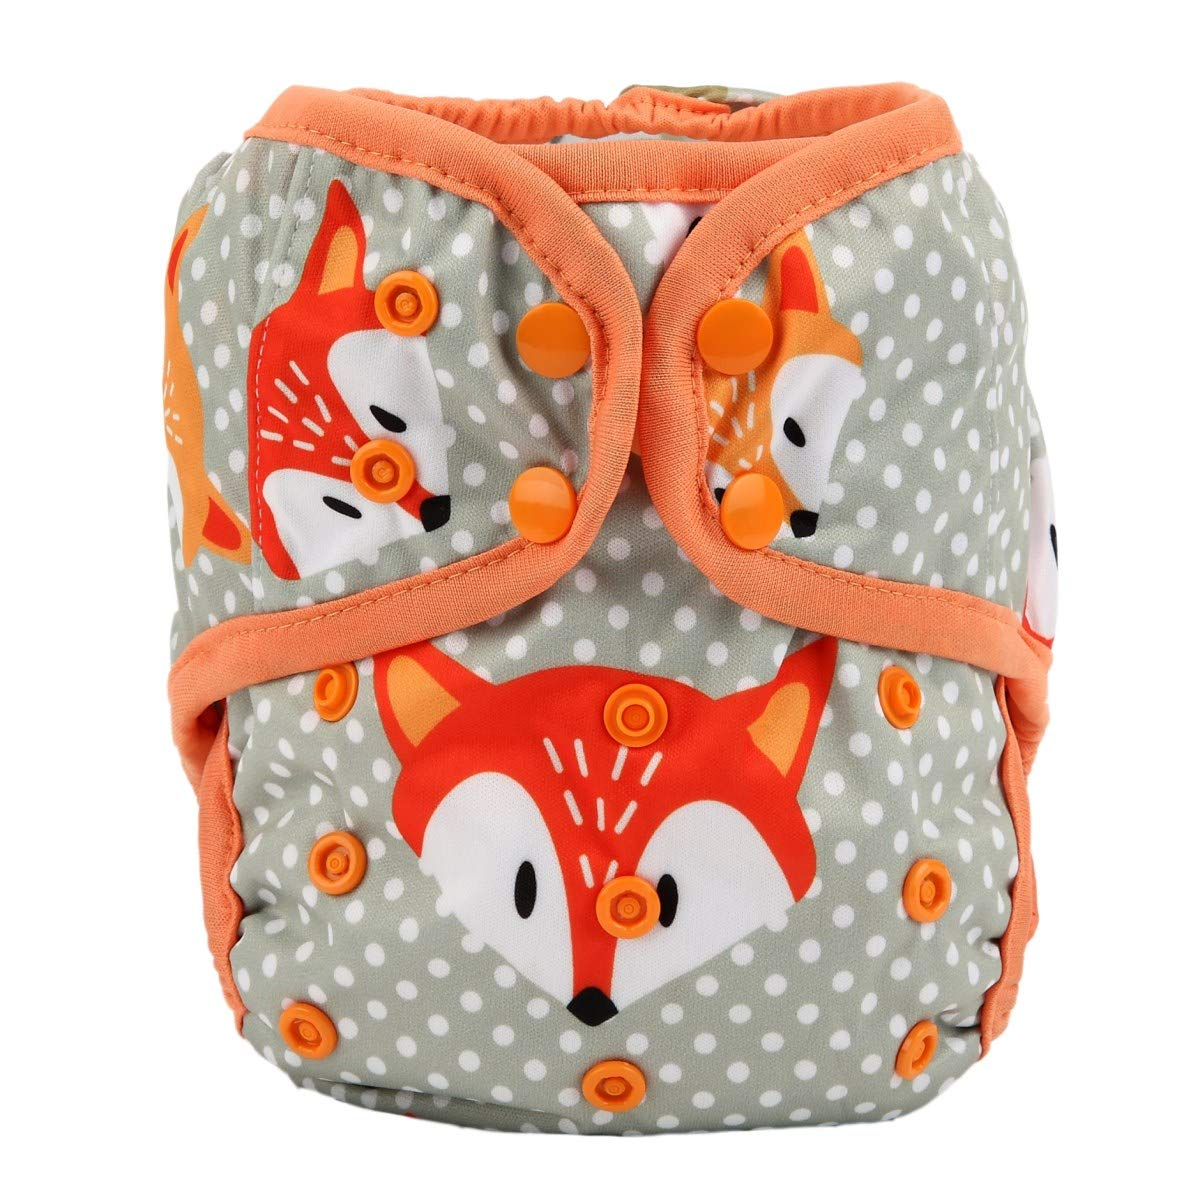 One Size Cloth Diaper Cover Snap with Double Gusset (Pineapple) Hibaby